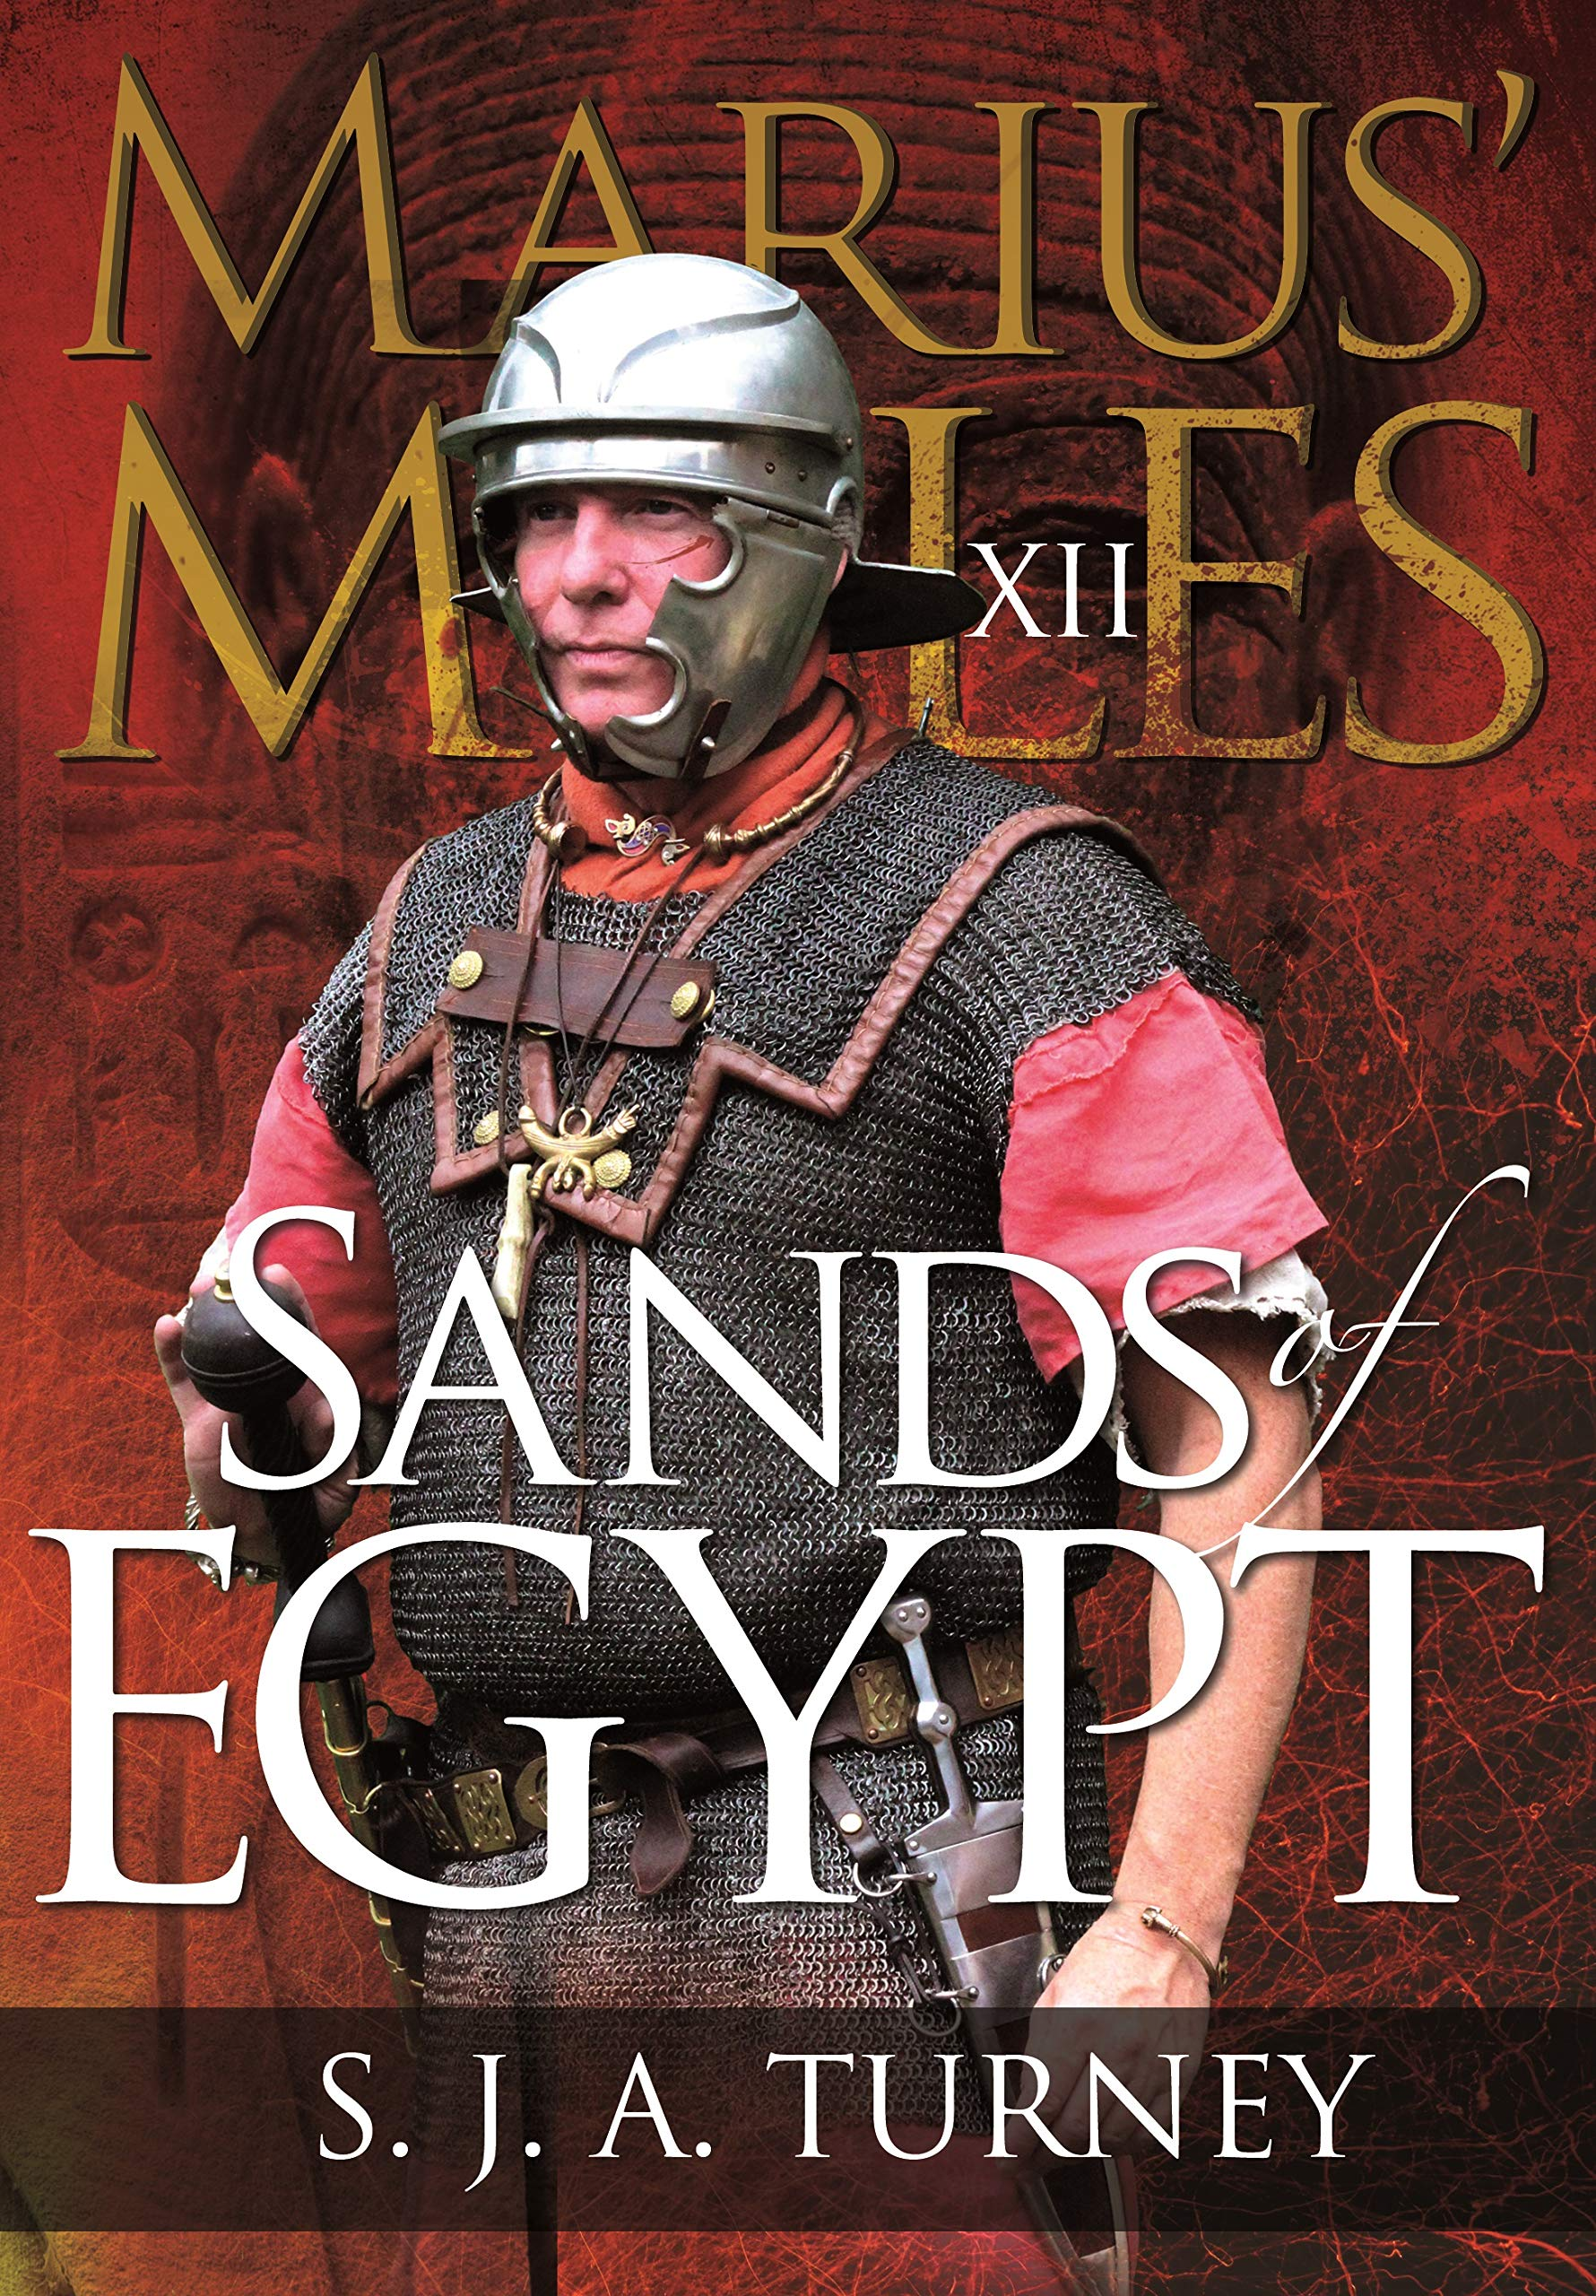 Marius' Mules XII: Sands of Egypt por S.J.A. Turney